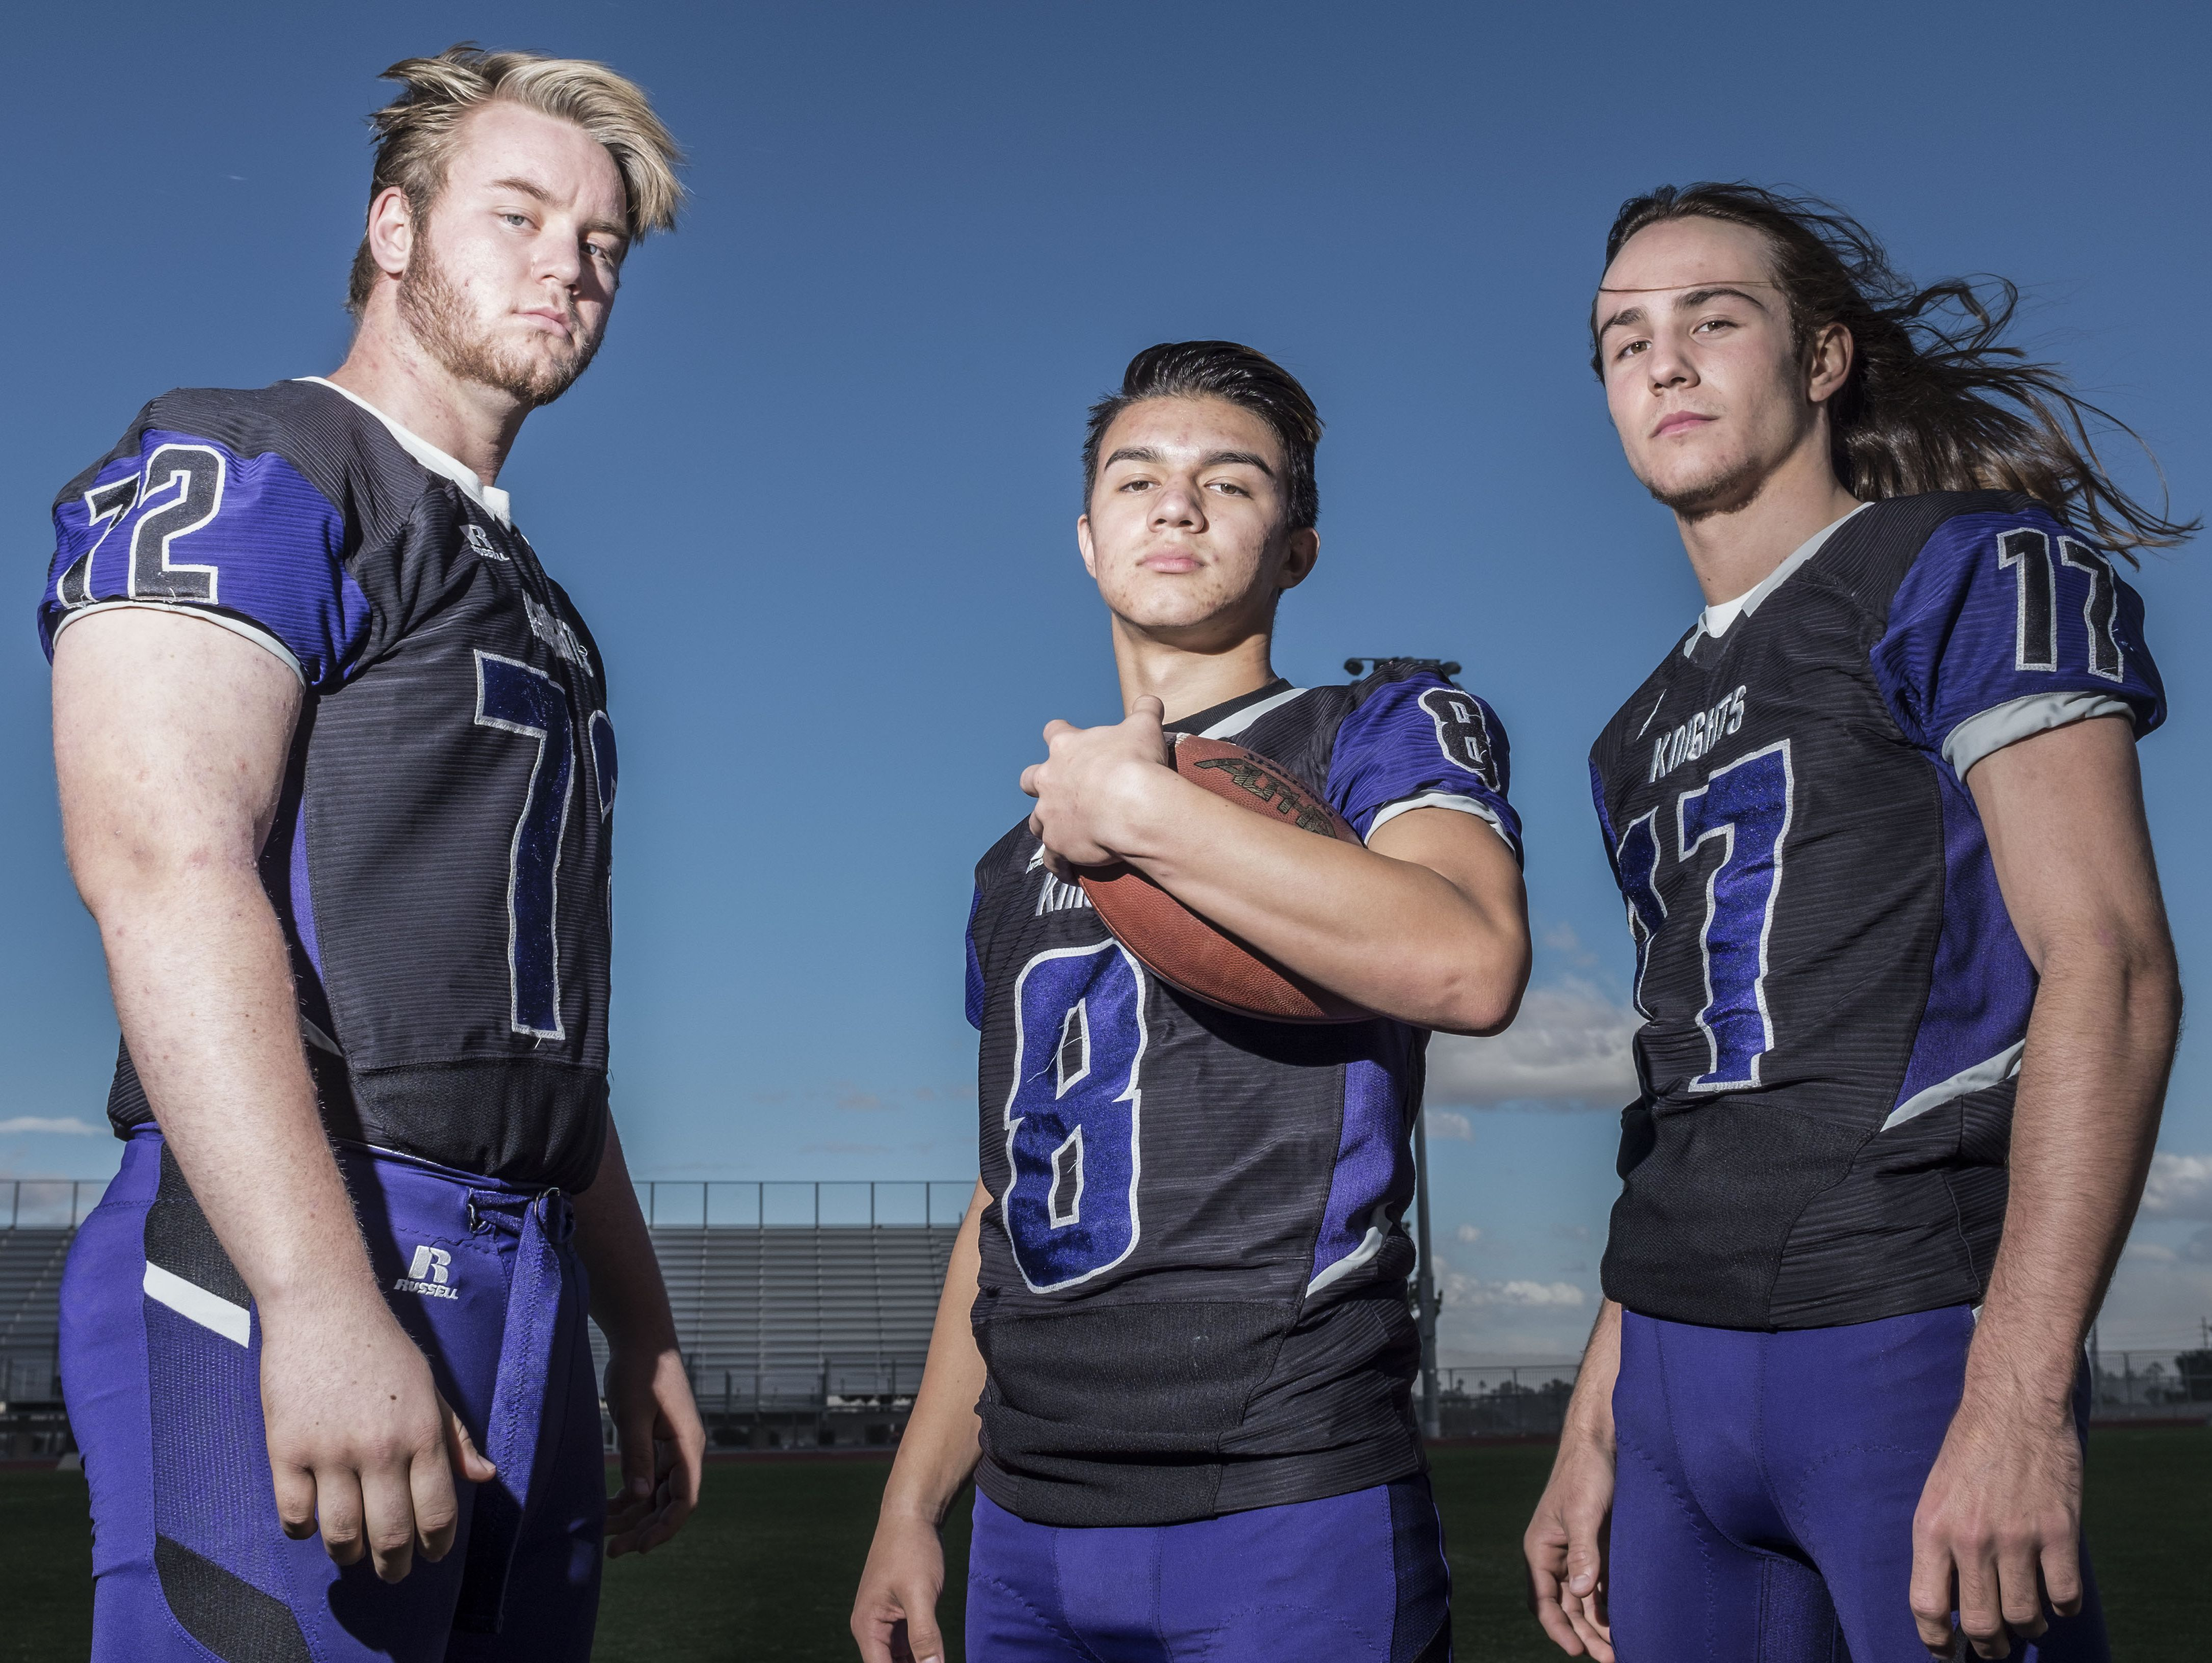 (From the left) Knights football players JT Lew, Kaleb Welmas and JD Lang at Shadow Hills High School on Friday, December 16, 2016 in Indio.